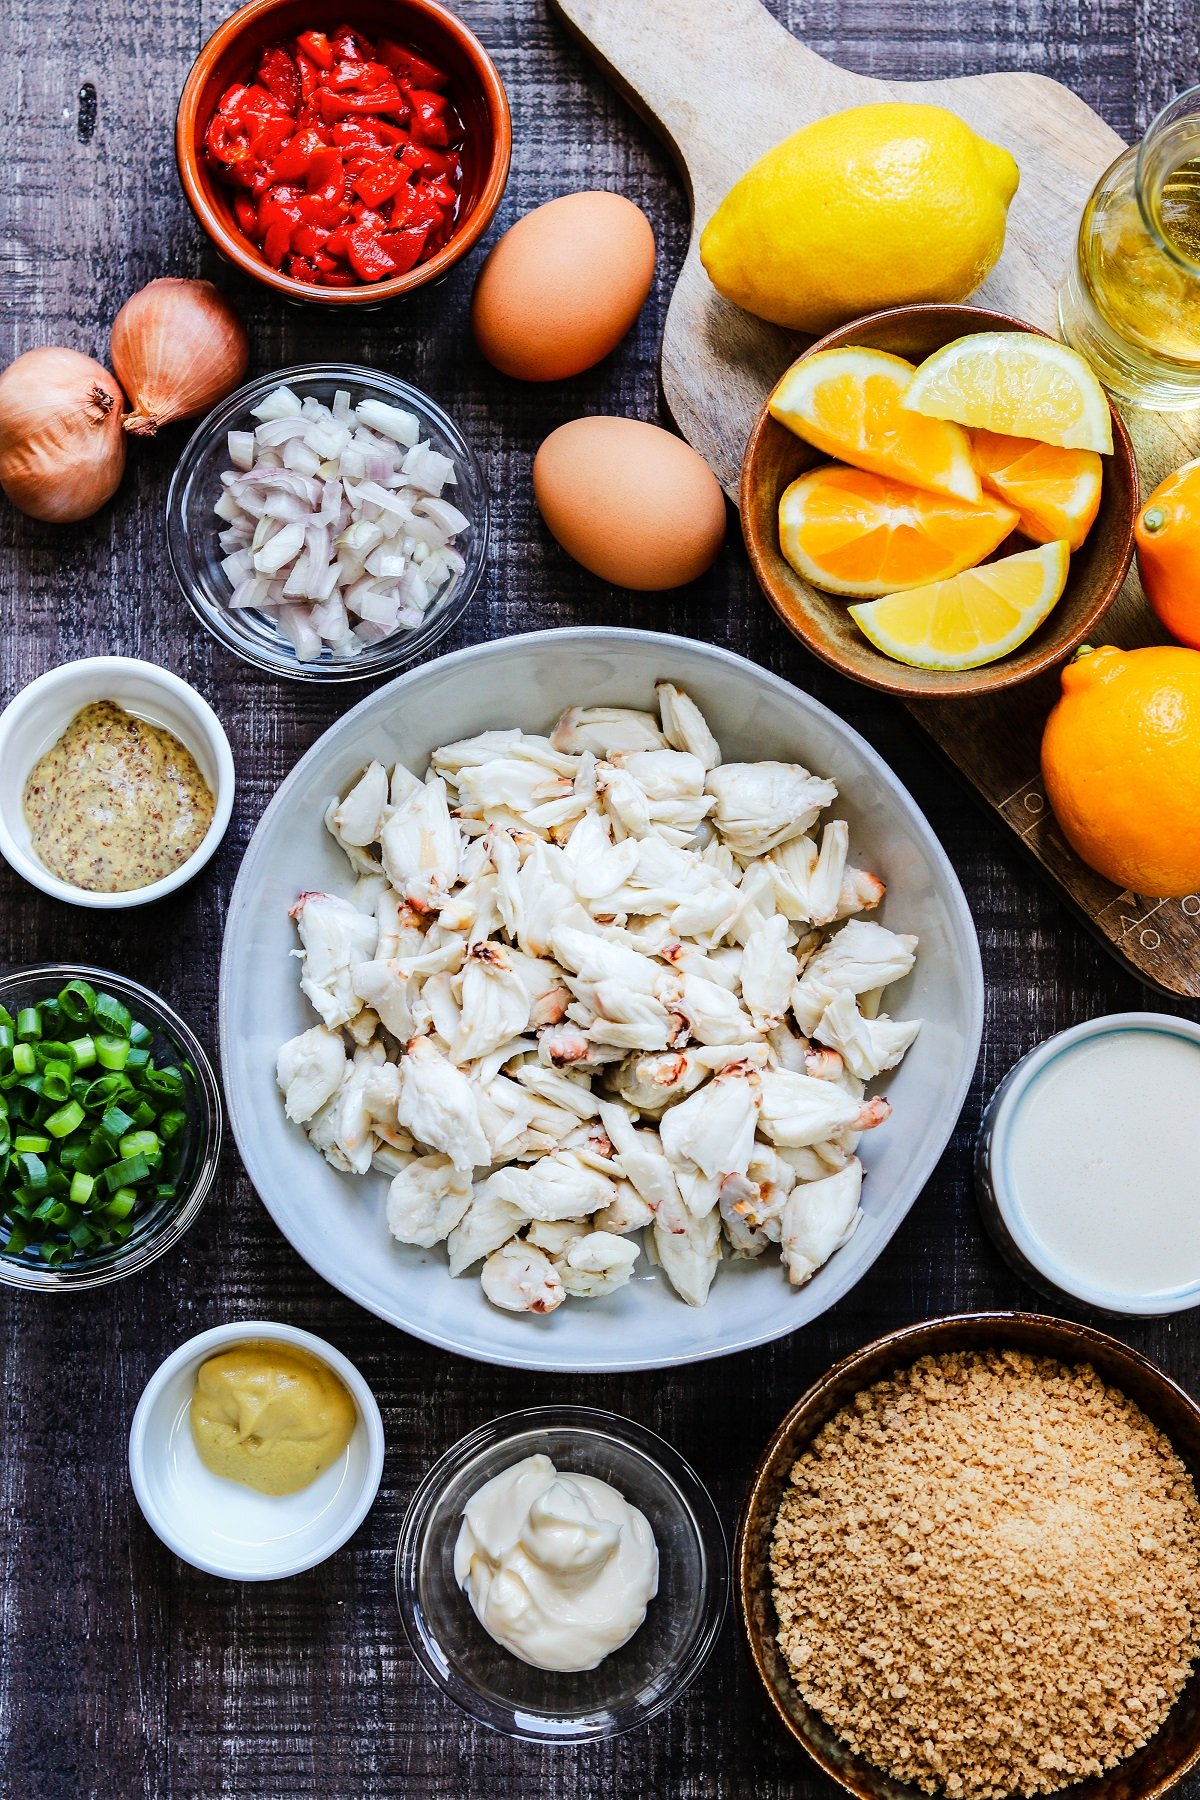 Lump crab meat and other ingredients in bowls on wooden surface.